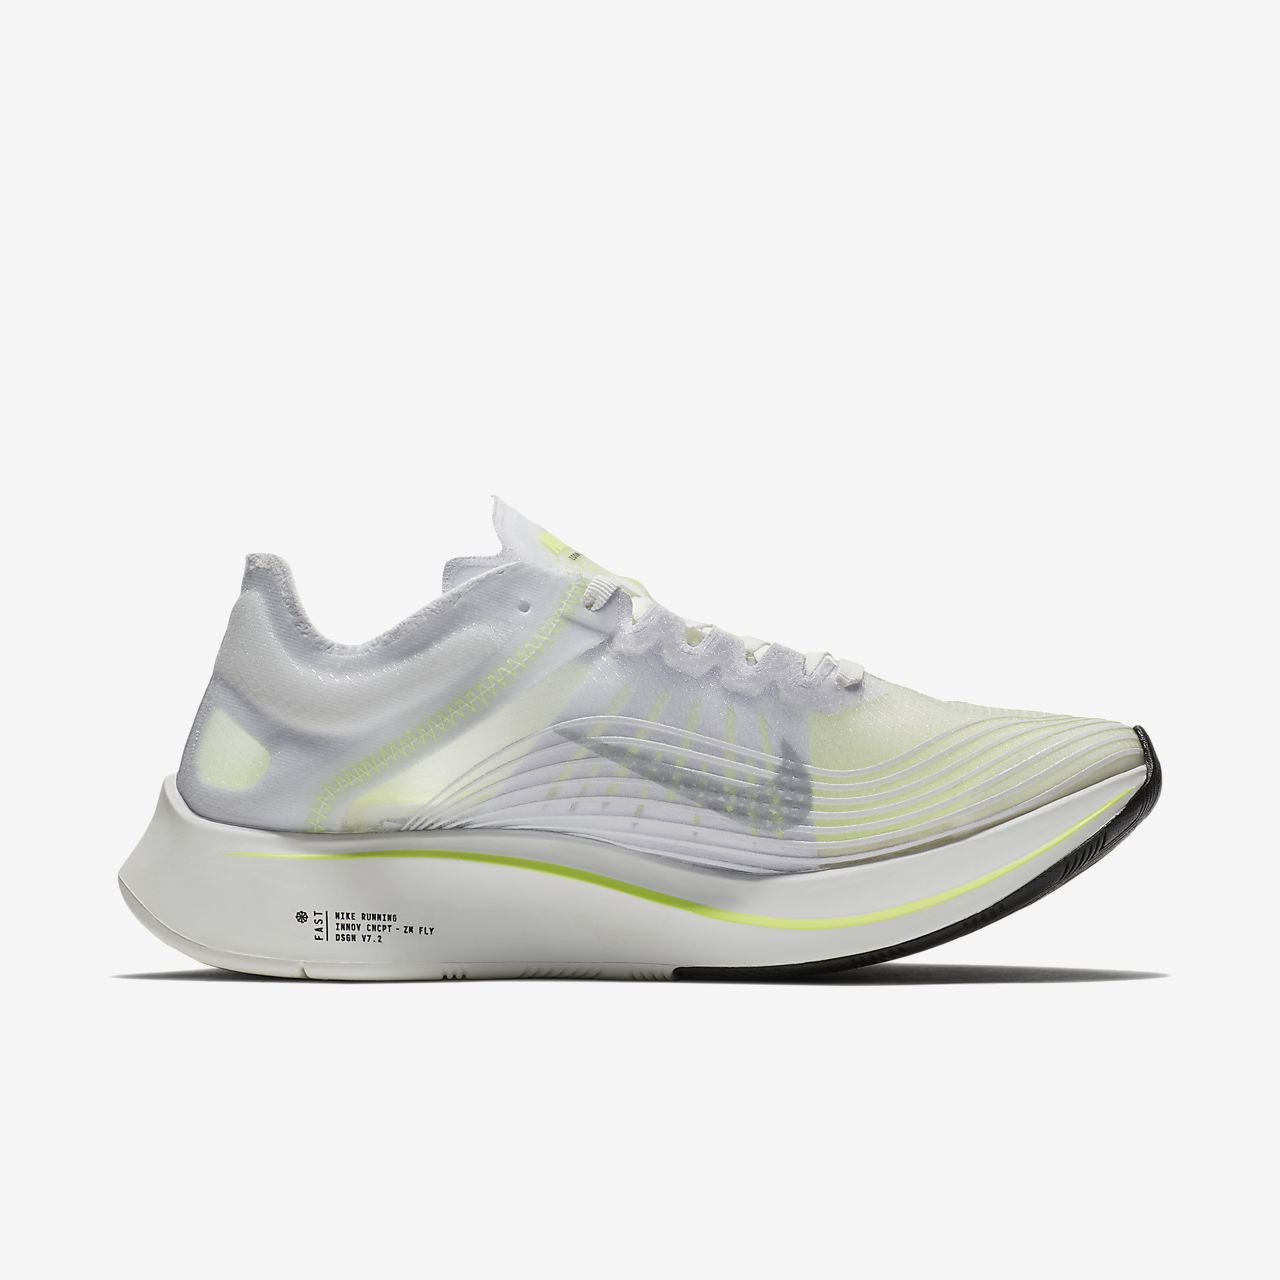 ... NikeLab Zoom Fly SP Women's Running Shoe